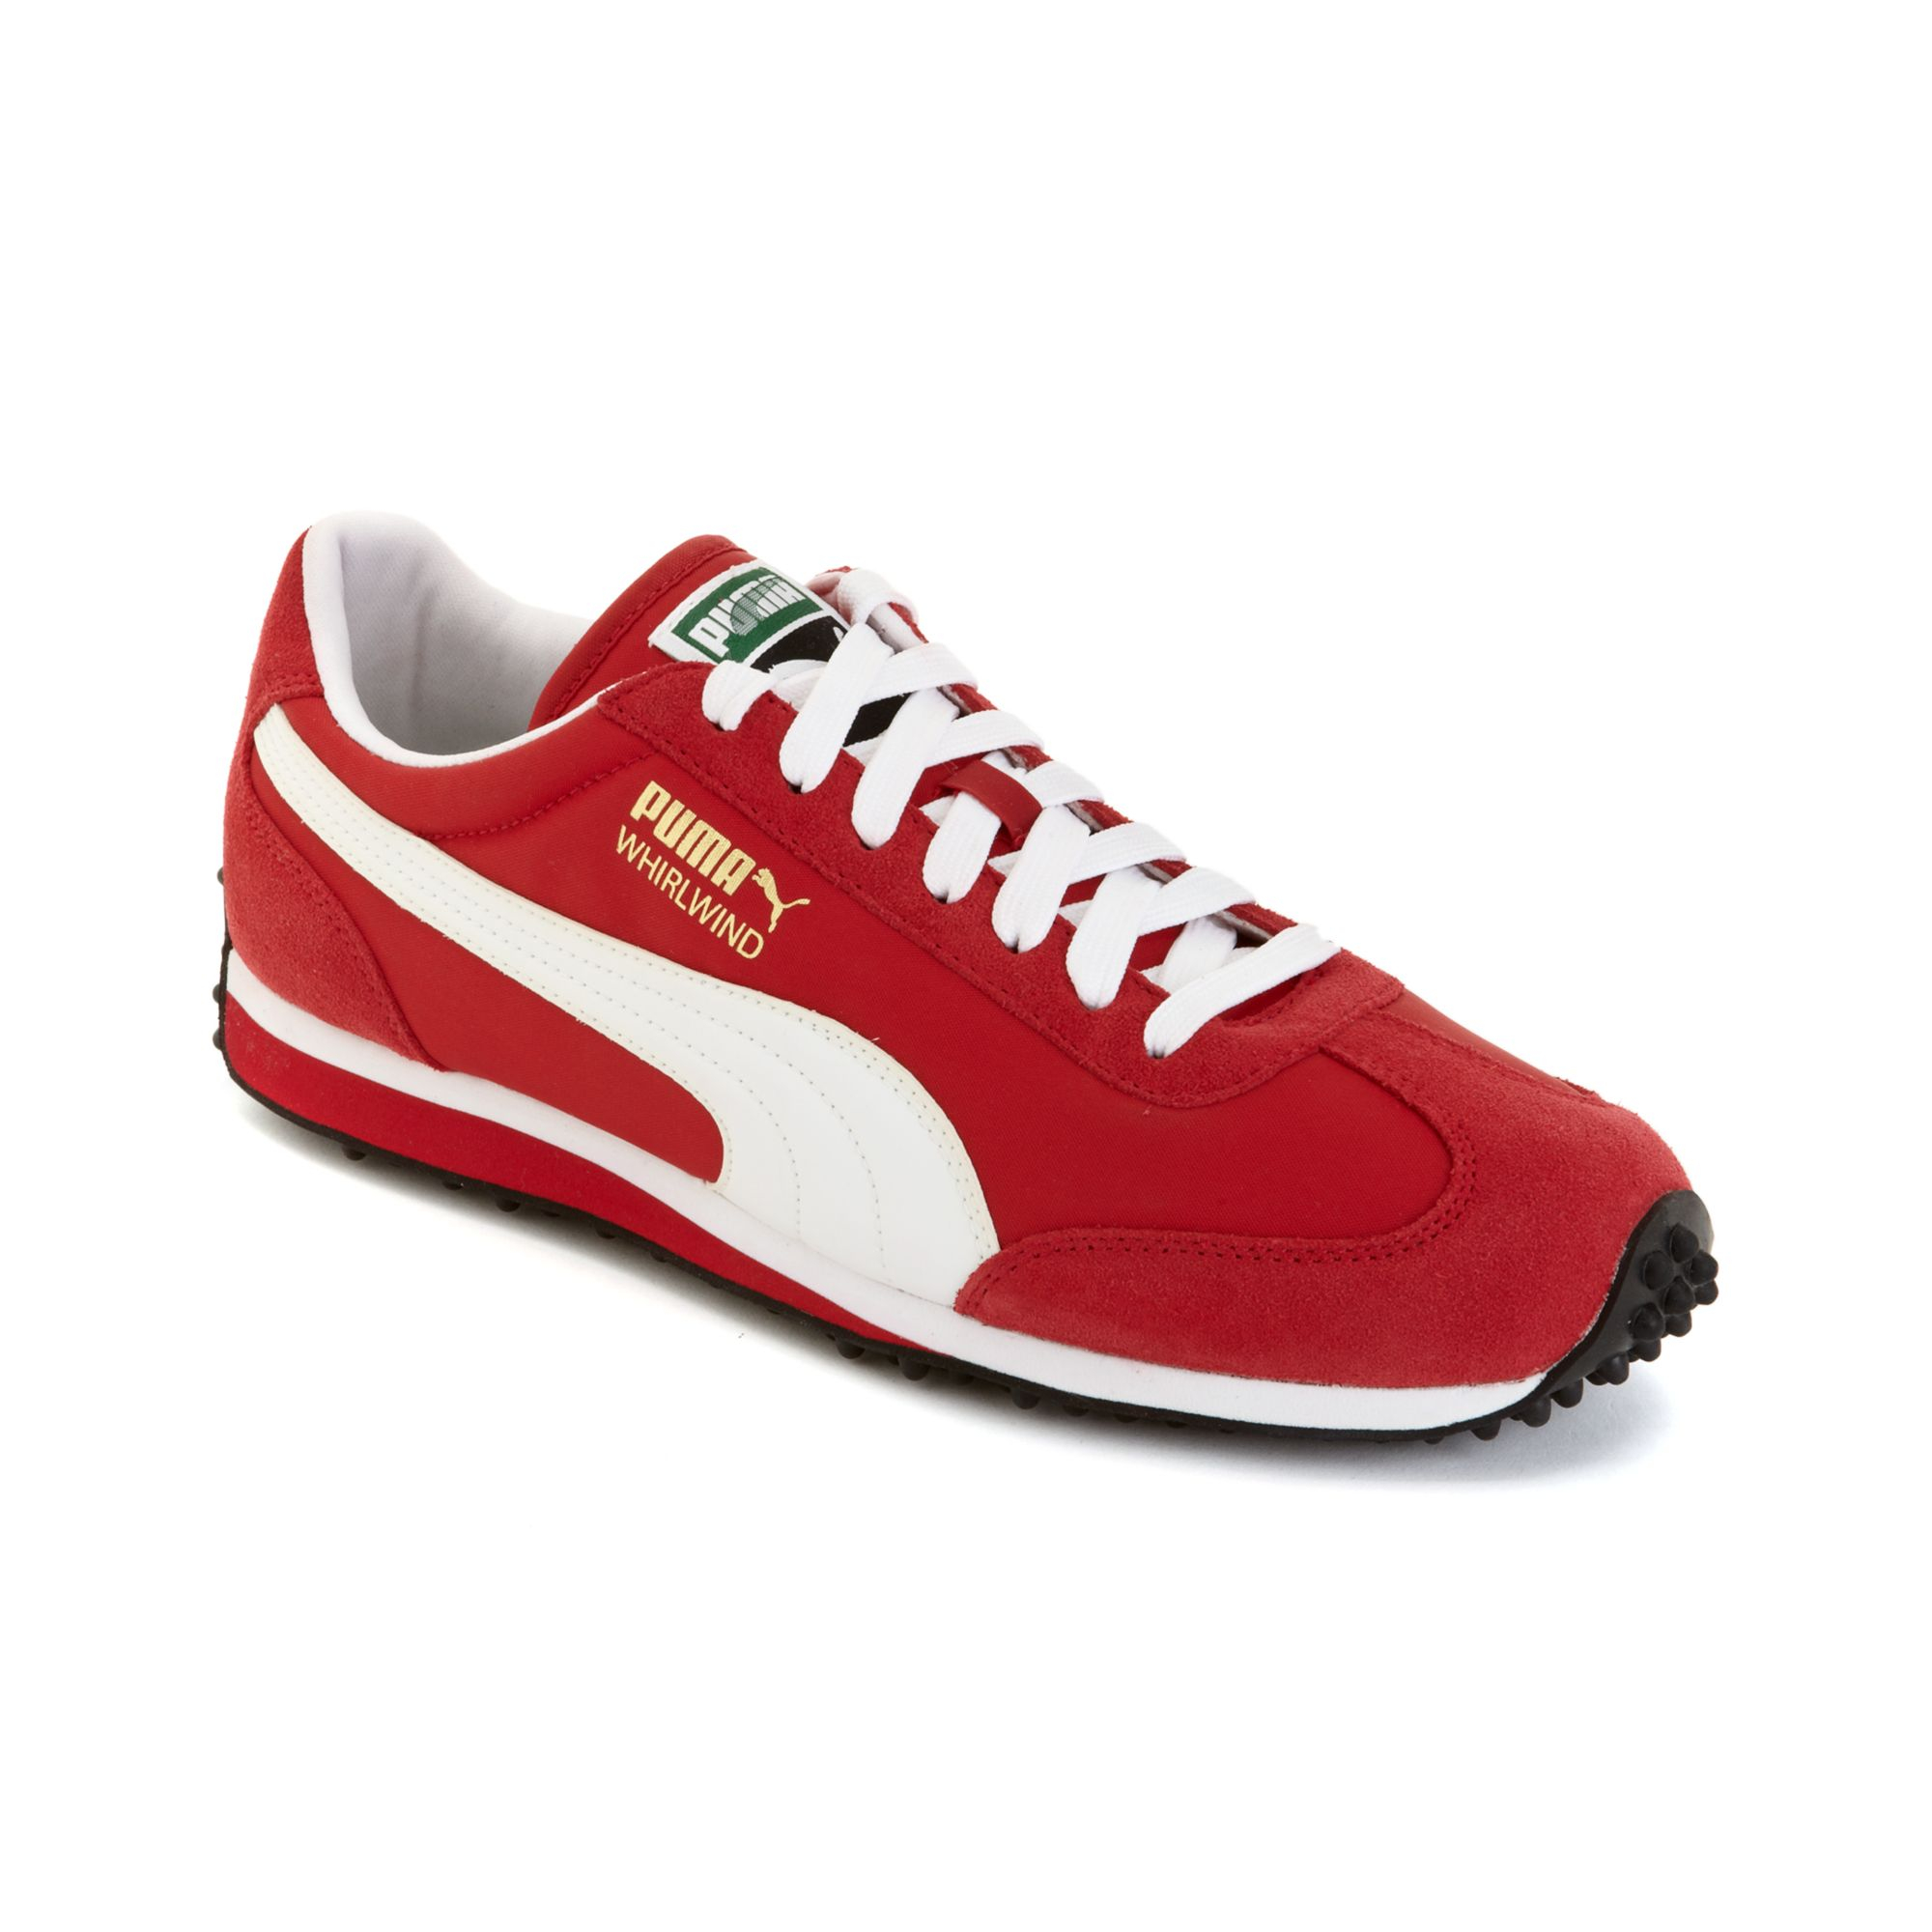 6ded5f2bc0f8bf Lyst - PUMA Whirlwind Classic Sneakers in Red for Men